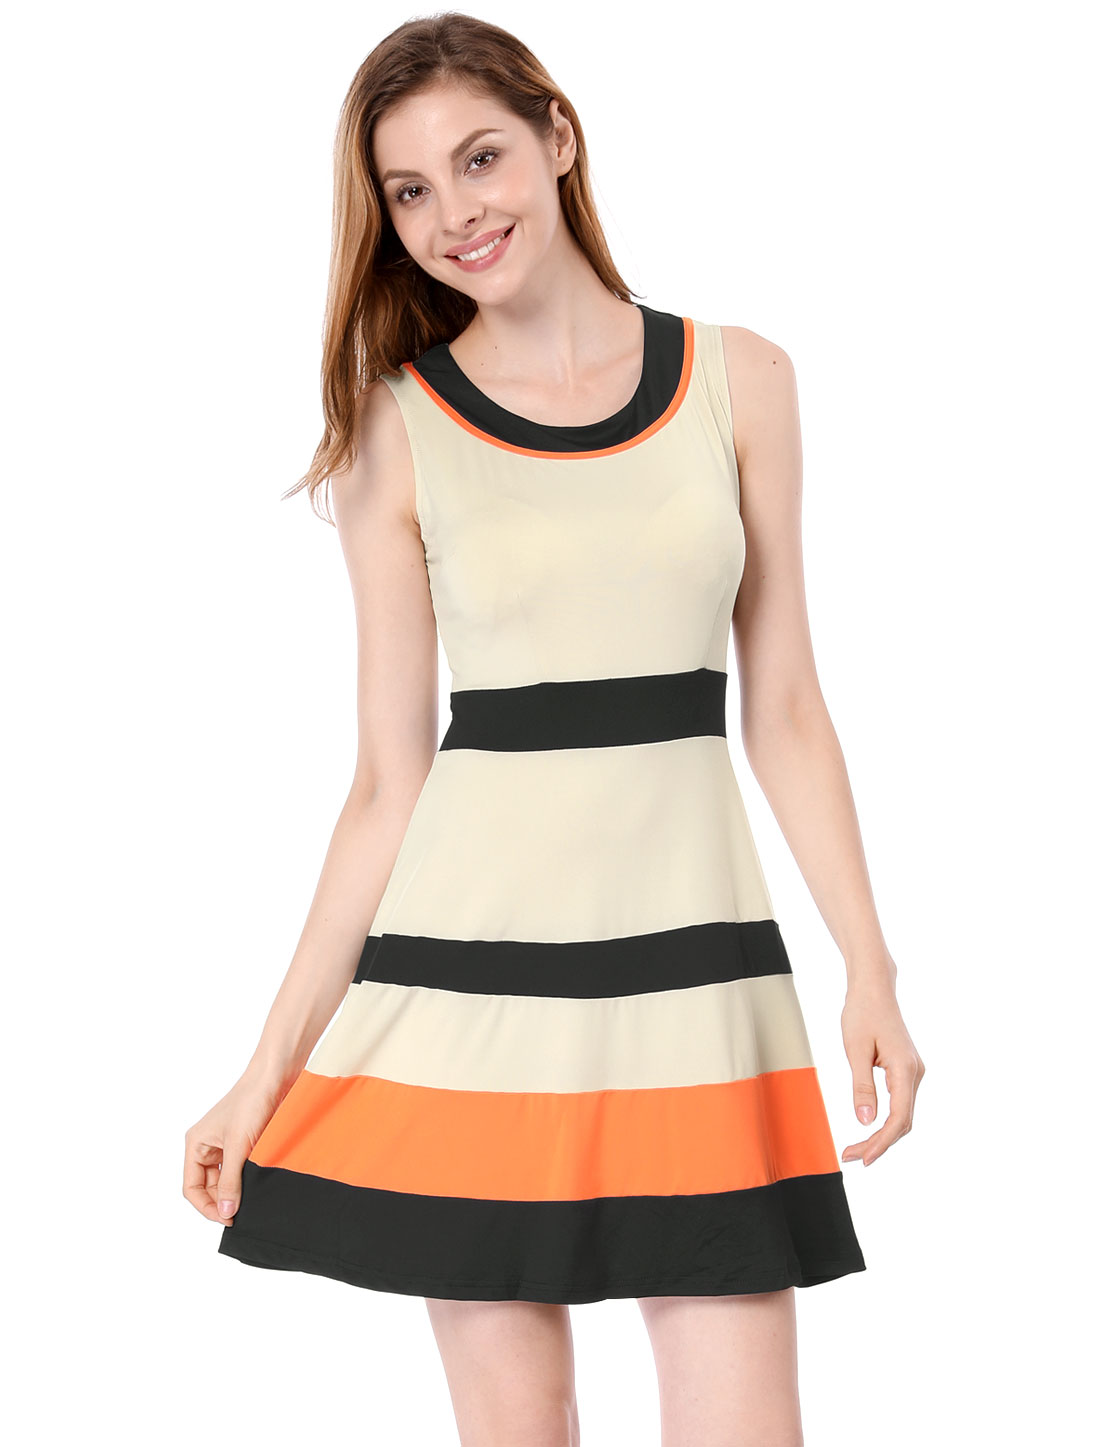 Women Contrast Color Sleeveless Round Neck Casual Skater Dresses Beige XS